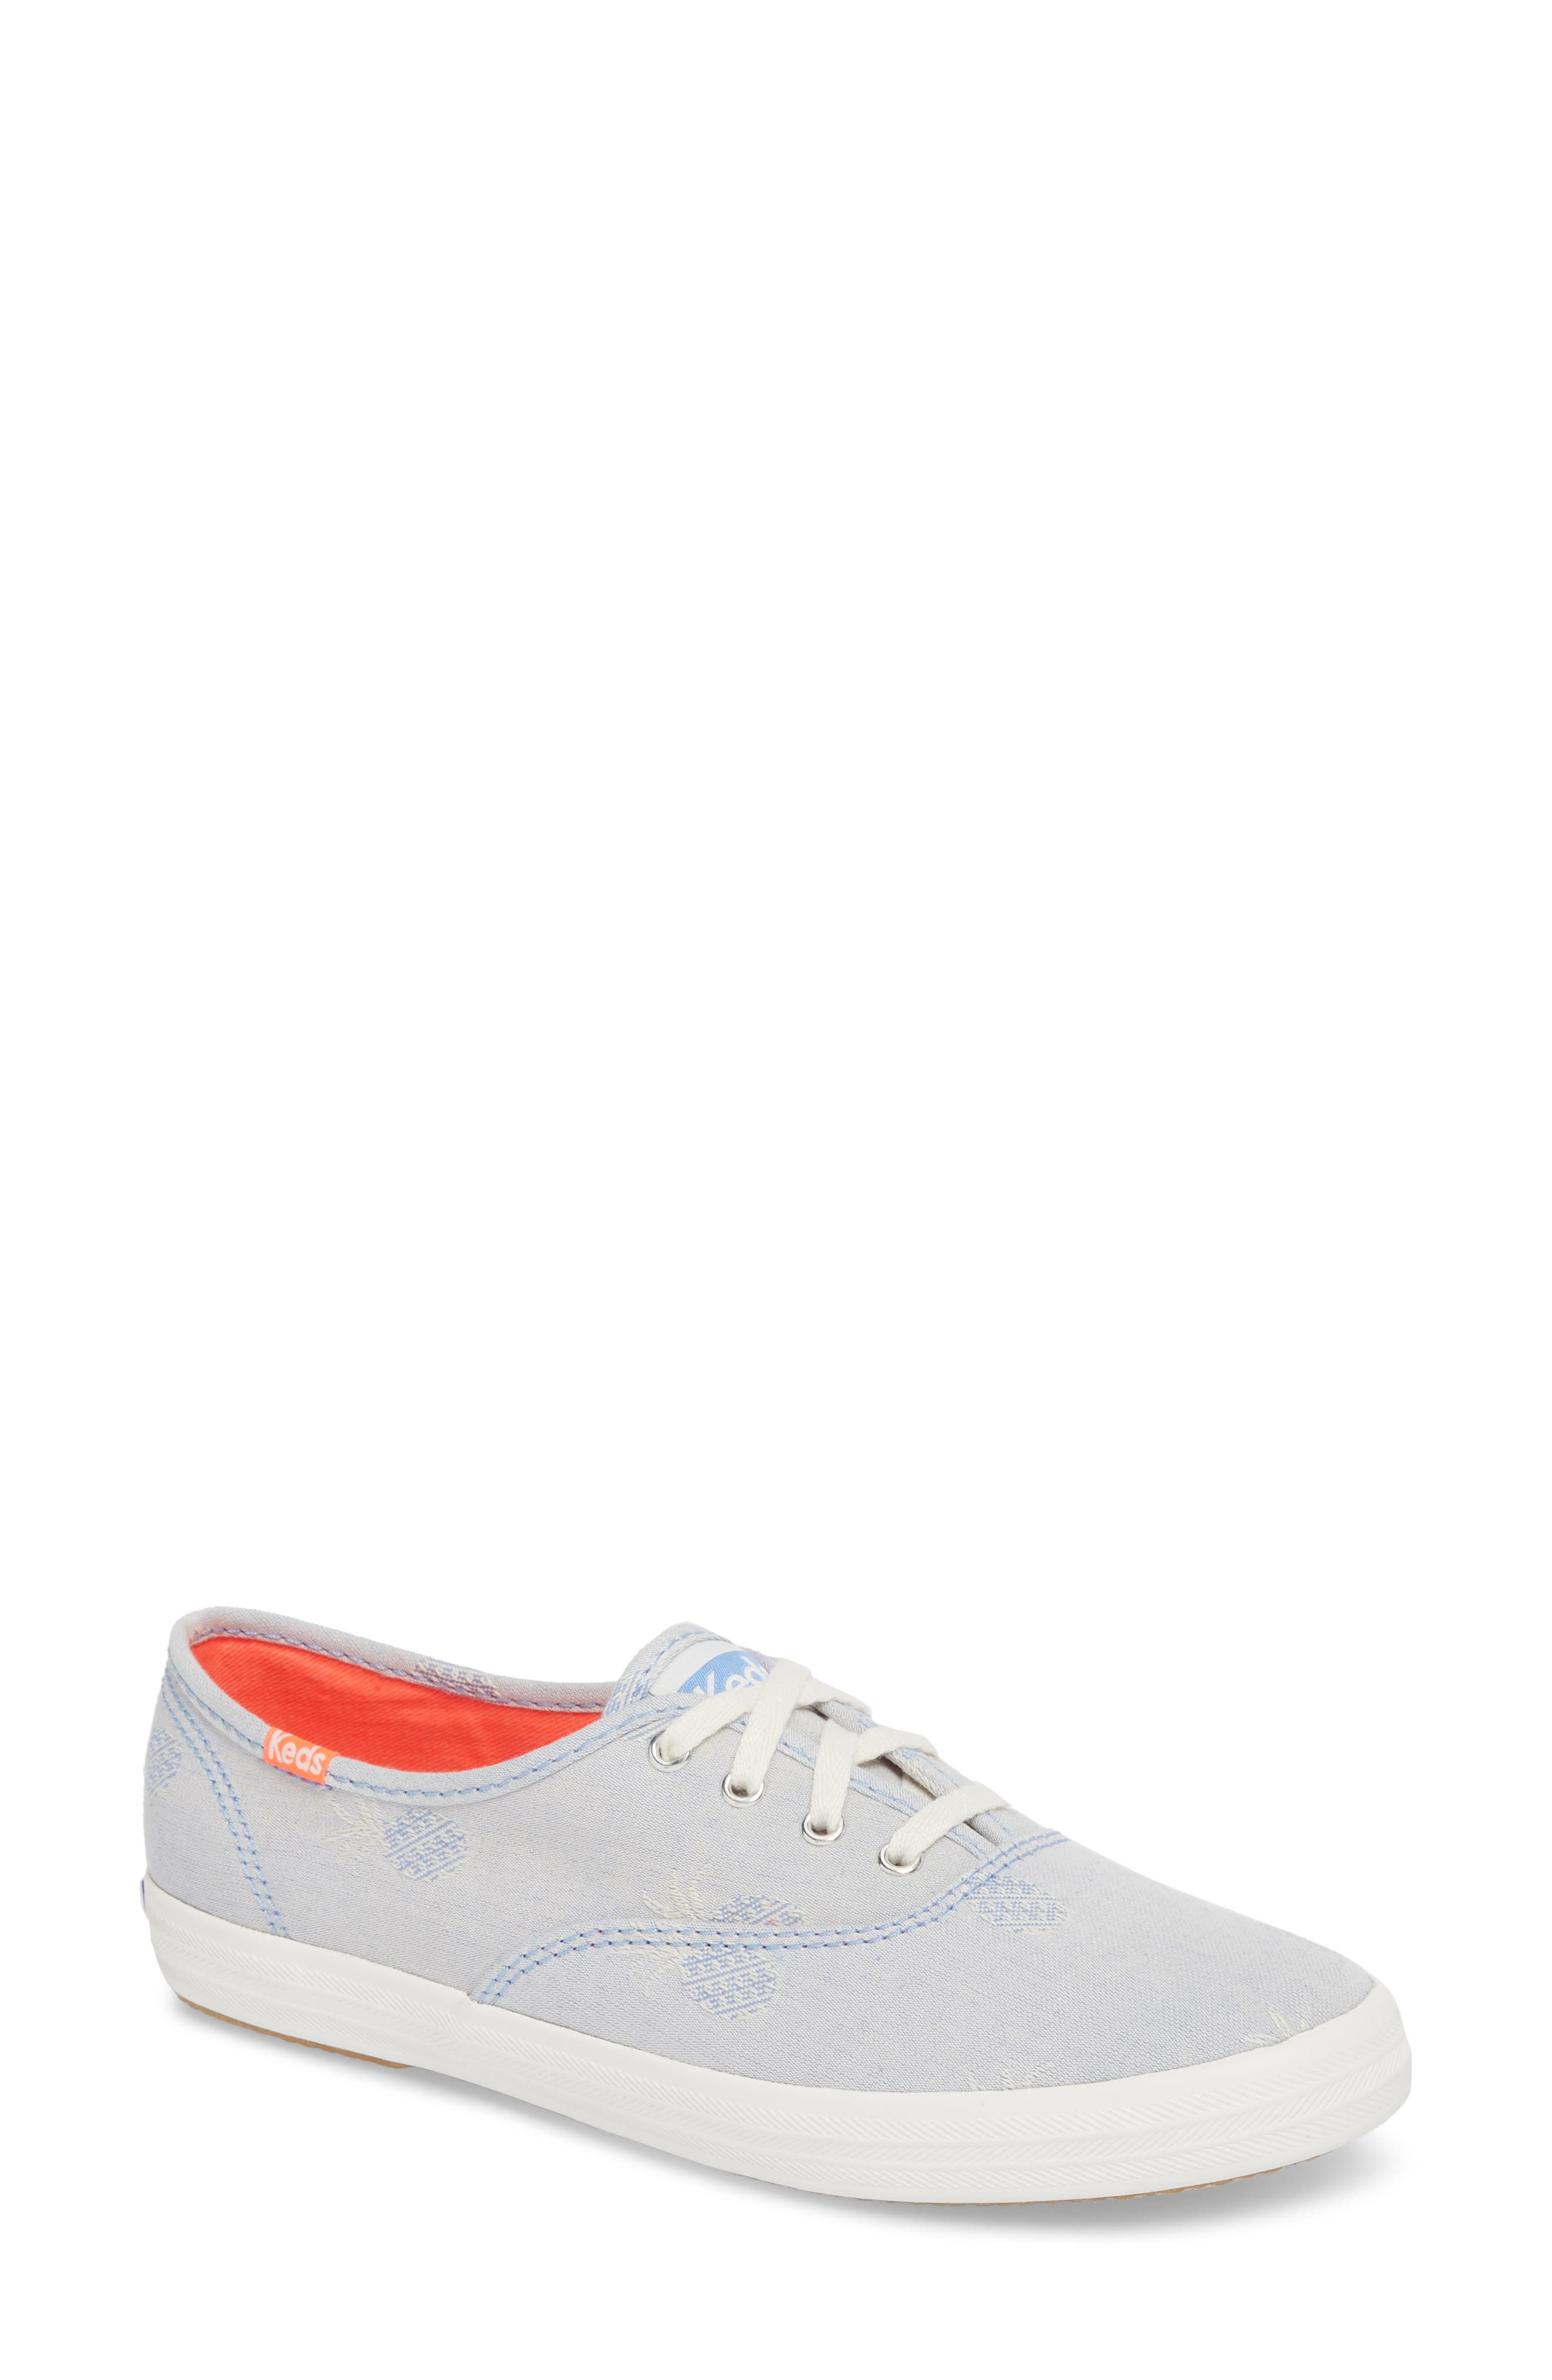 Champion Pineapple Chambray Sneaker,                             Main thumbnail 1, color,                             400